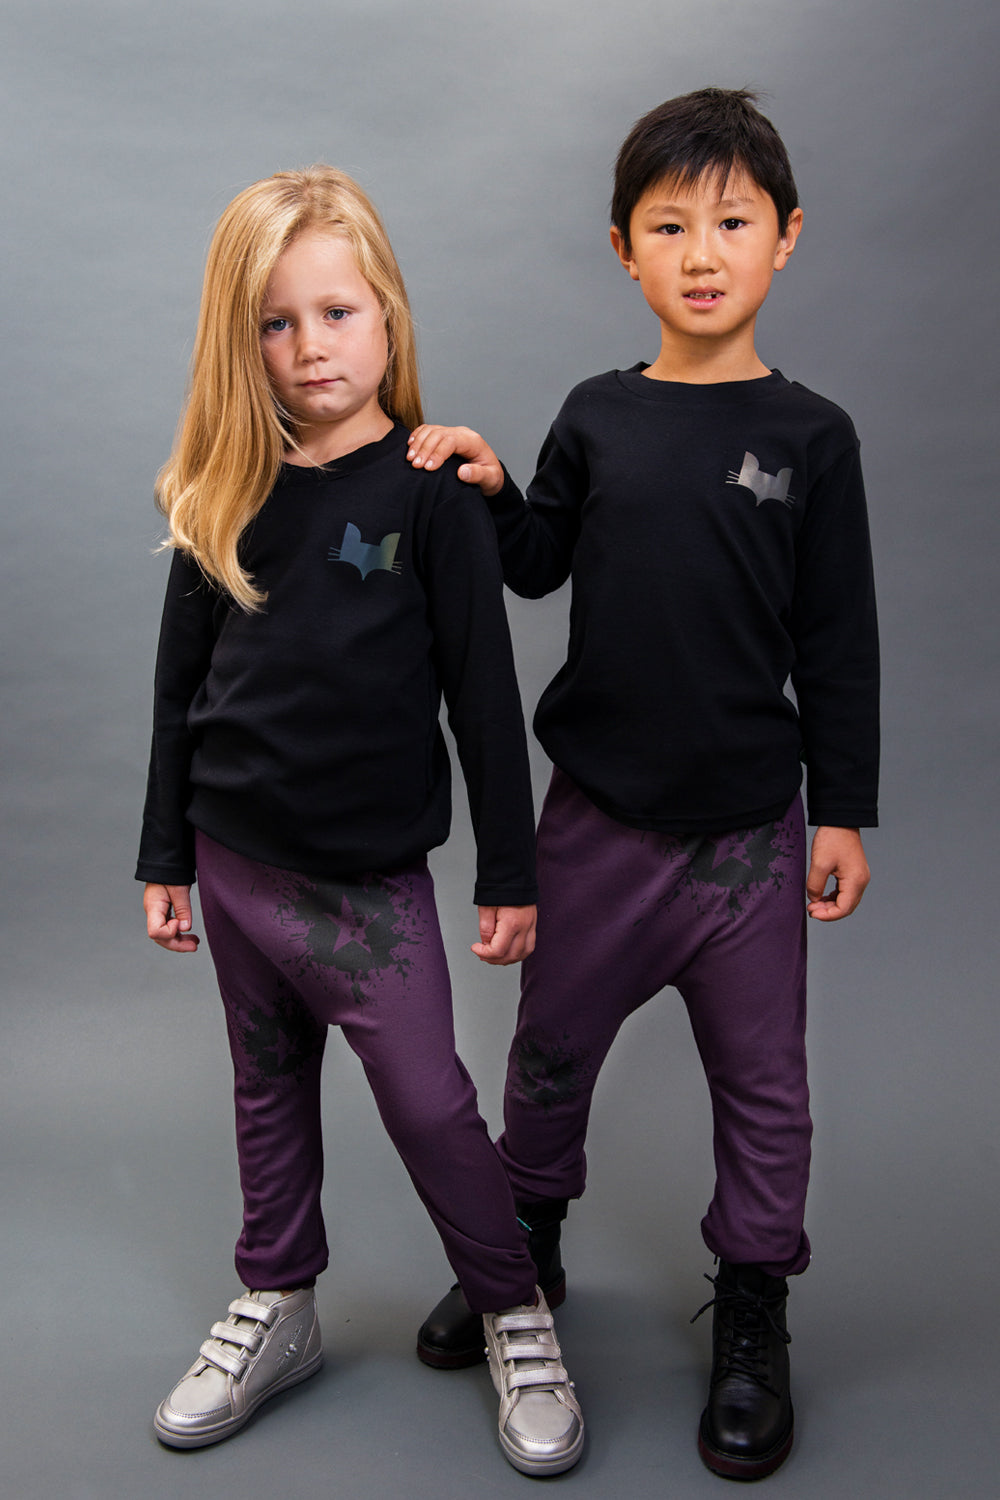 100% cotton, unisex punchy plum Joggers. Made and designed in Britain using chemical free inks.